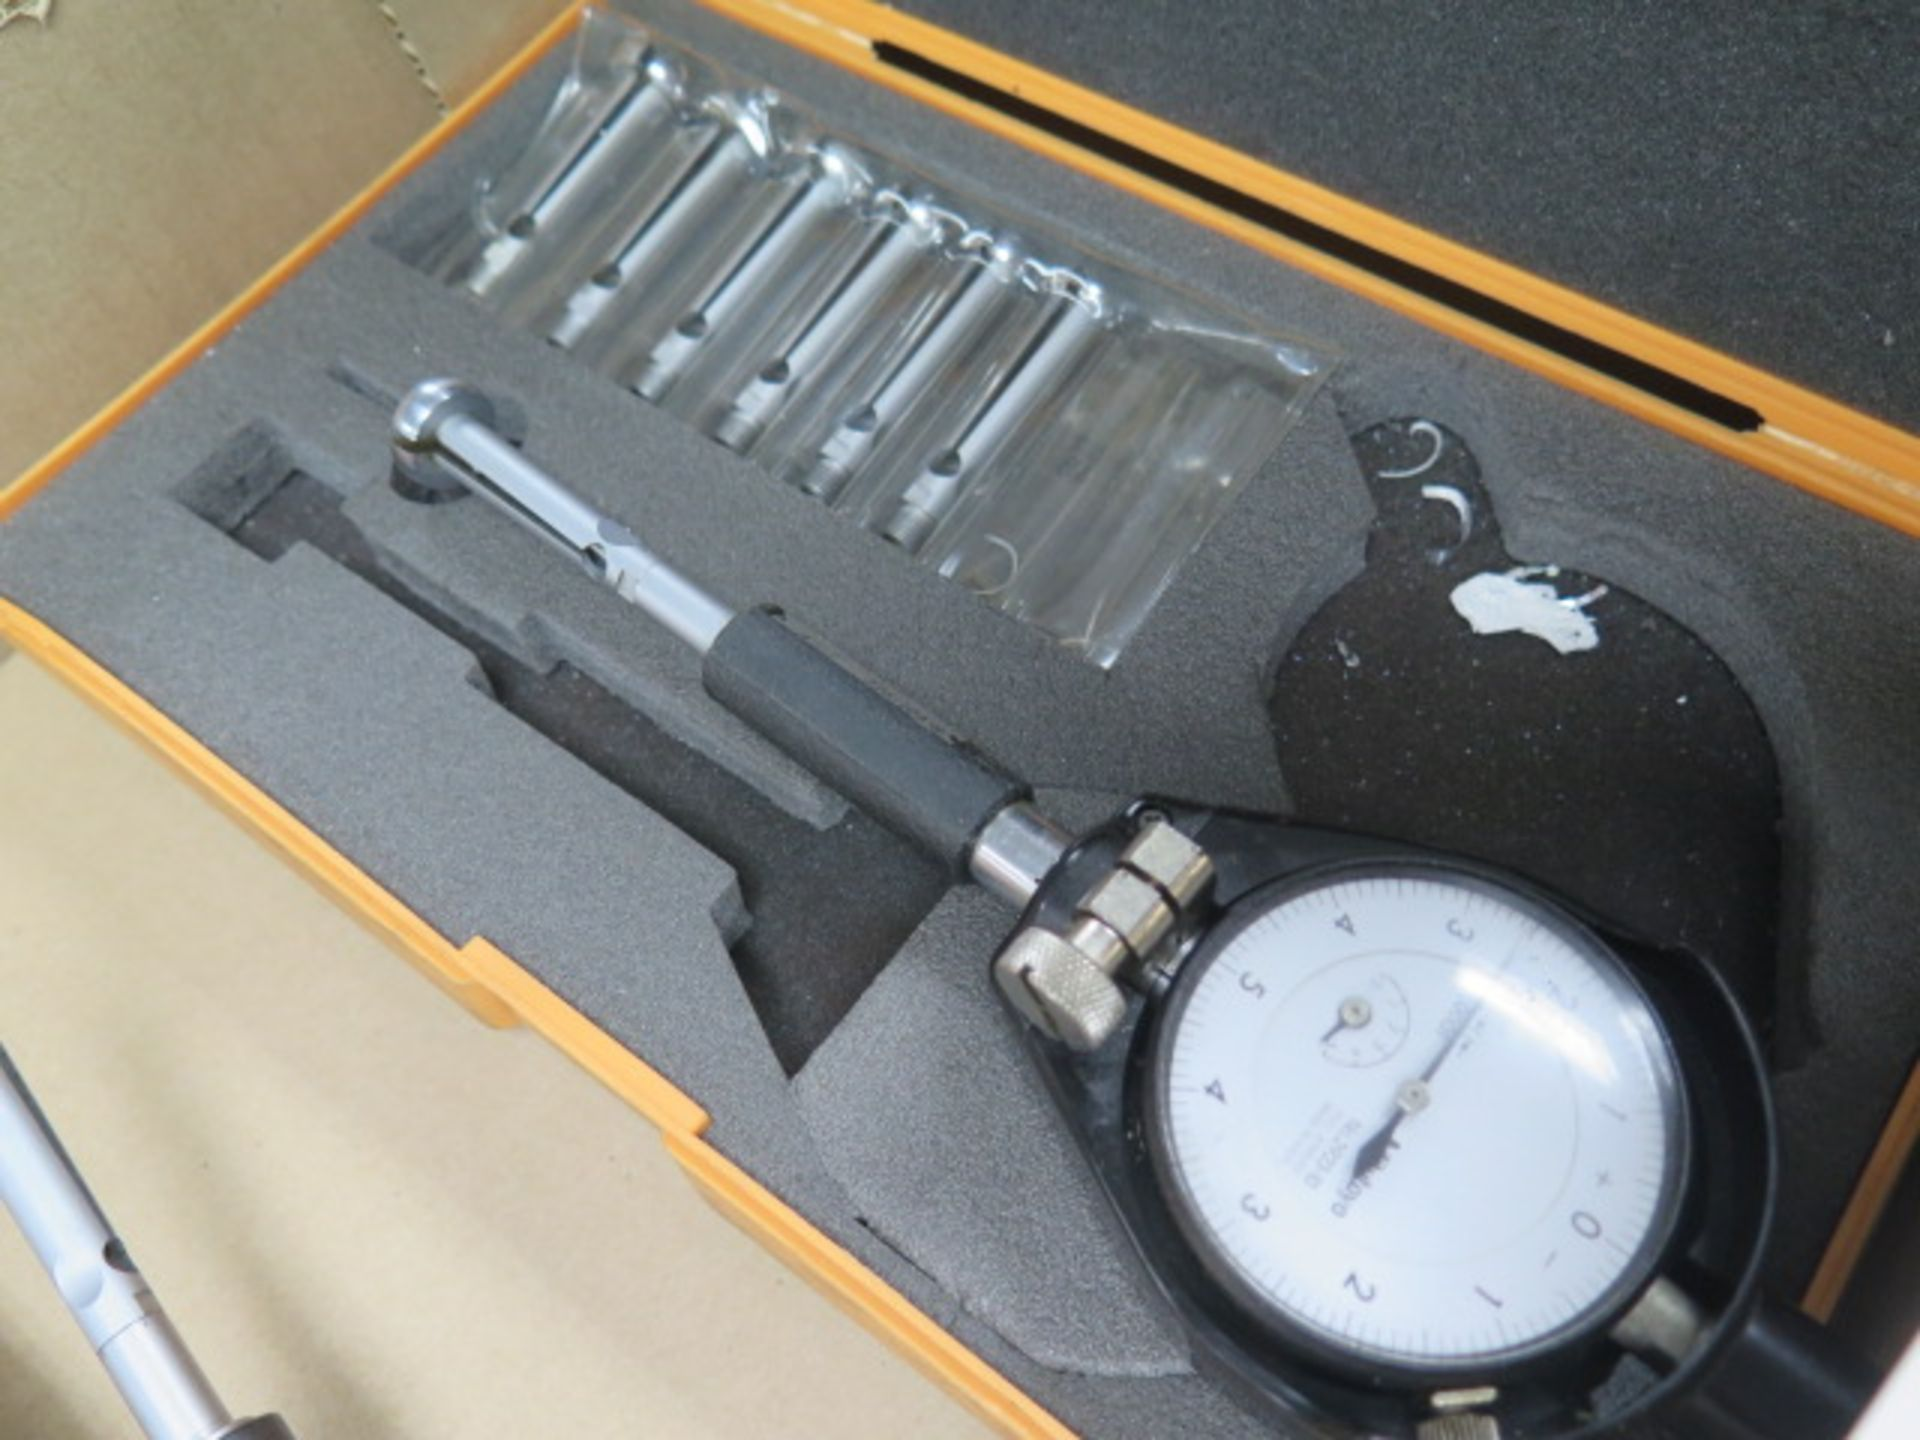 Mitutoyo Dial Bore Gages (2) (SOLD AS-IS - NO WARRANTY) - Image 3 of 4